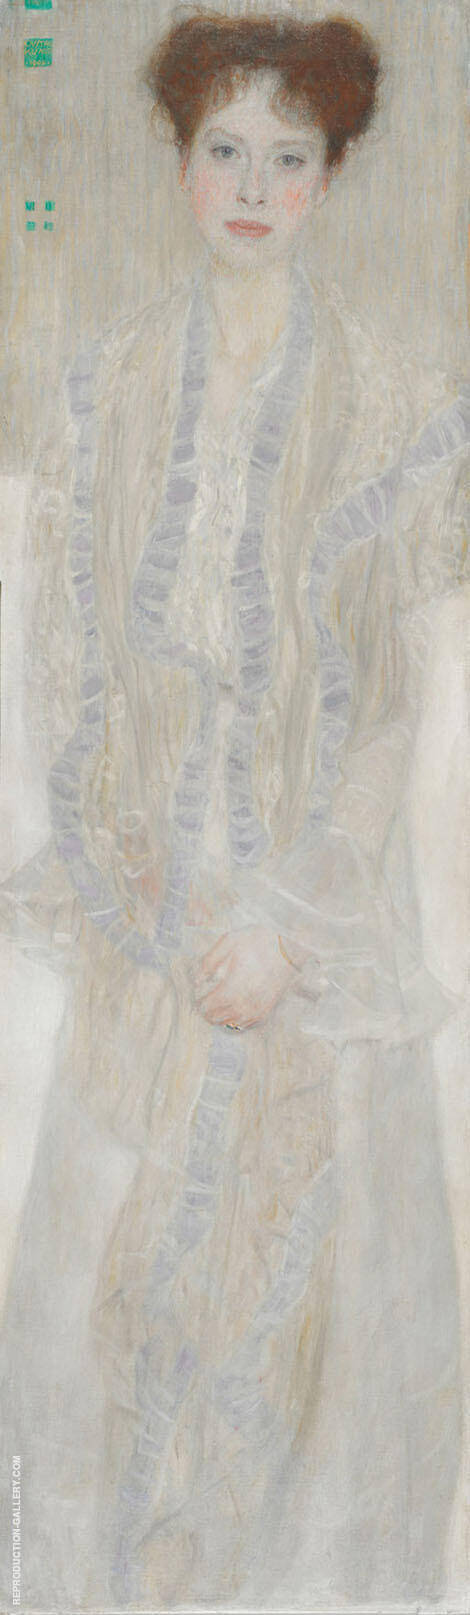 Portrait of Gertrude Loew 1902 By Gustav Klimt